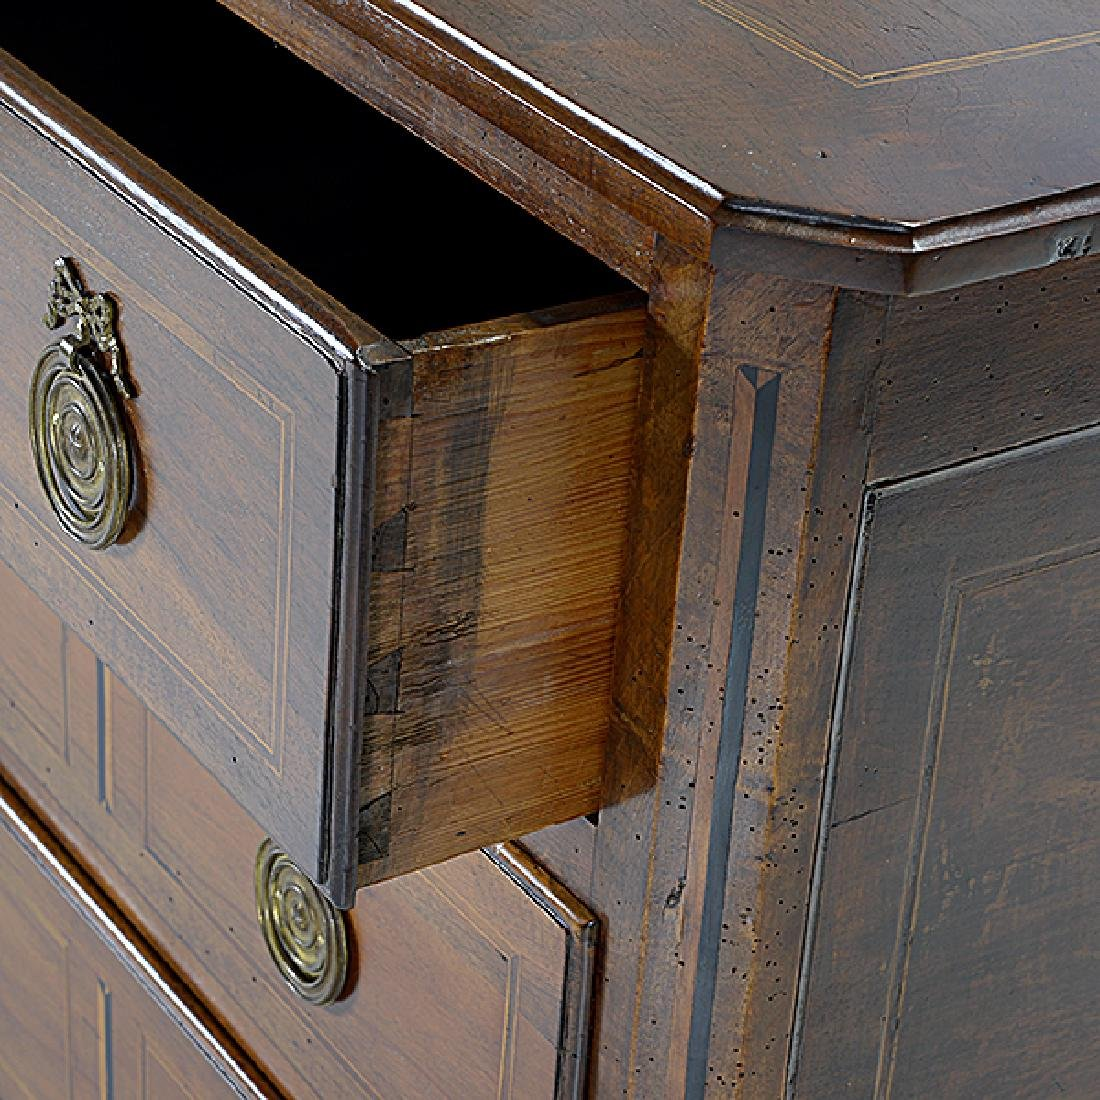 French Provincial Walnut Inlaid Commode - 3